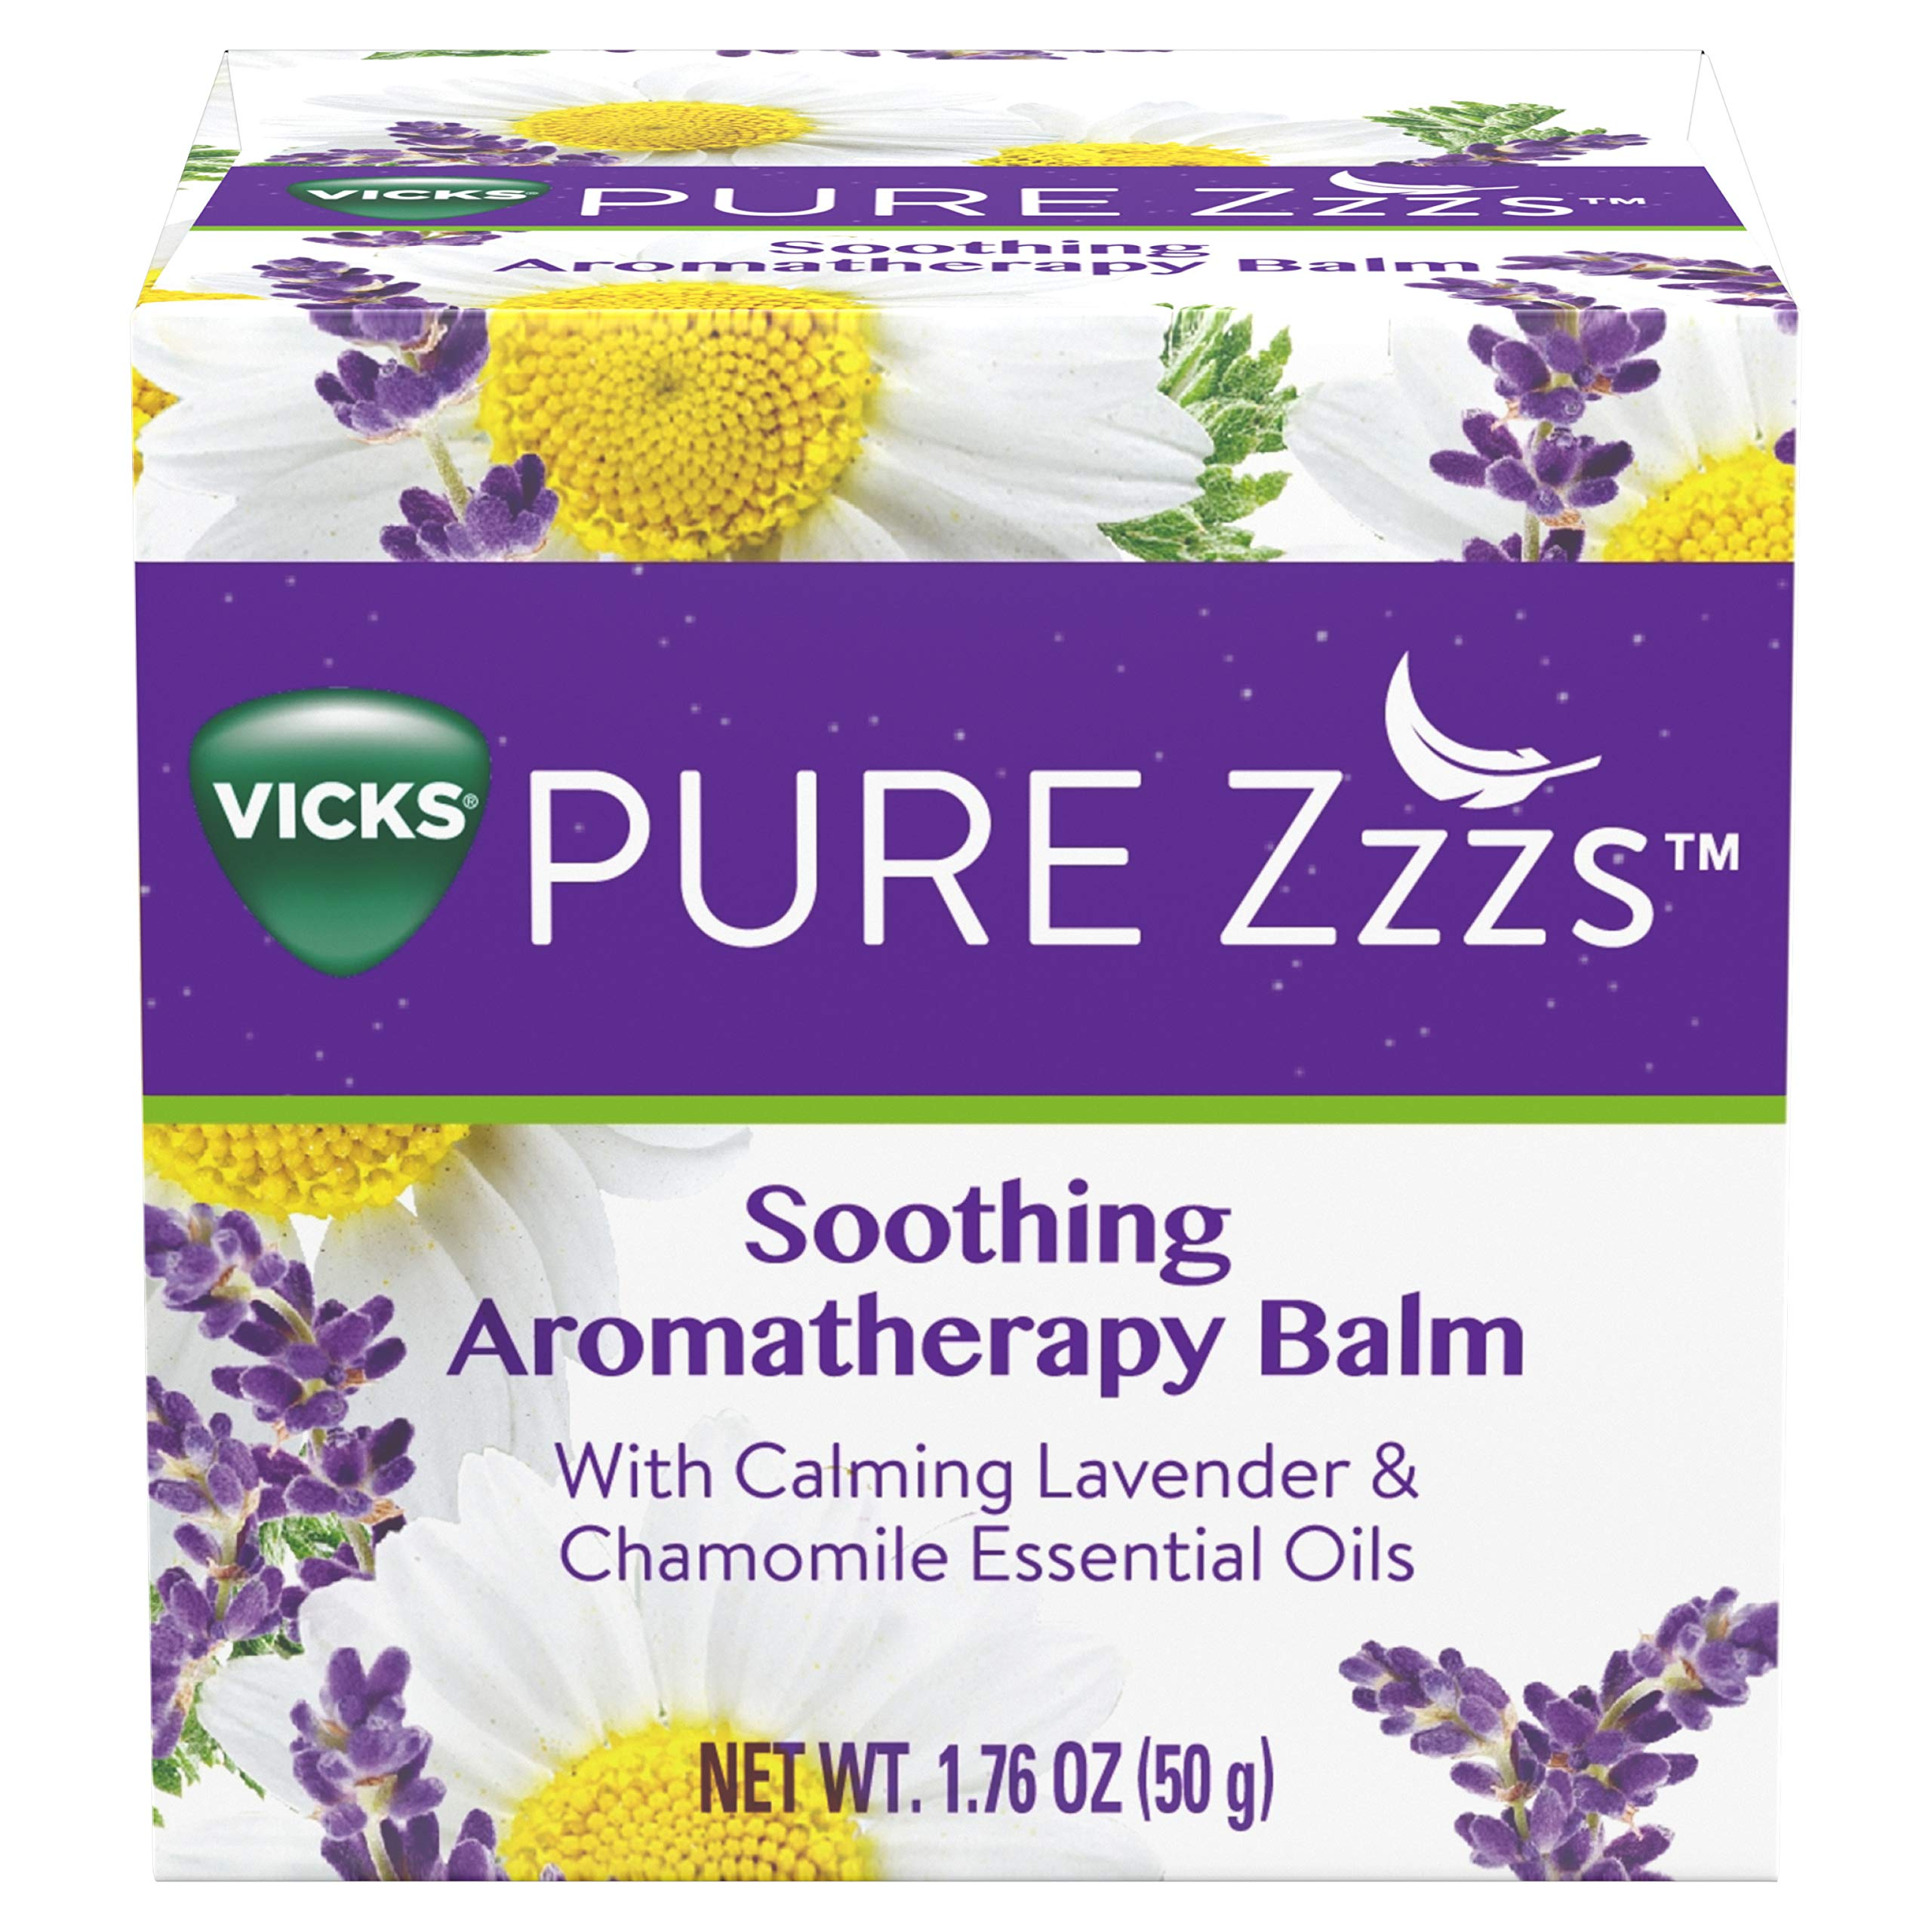 Vicks ZZZQuil Pure Zzzs Soothing Aromatherapy Balm with Essential Oils 1.76 oz